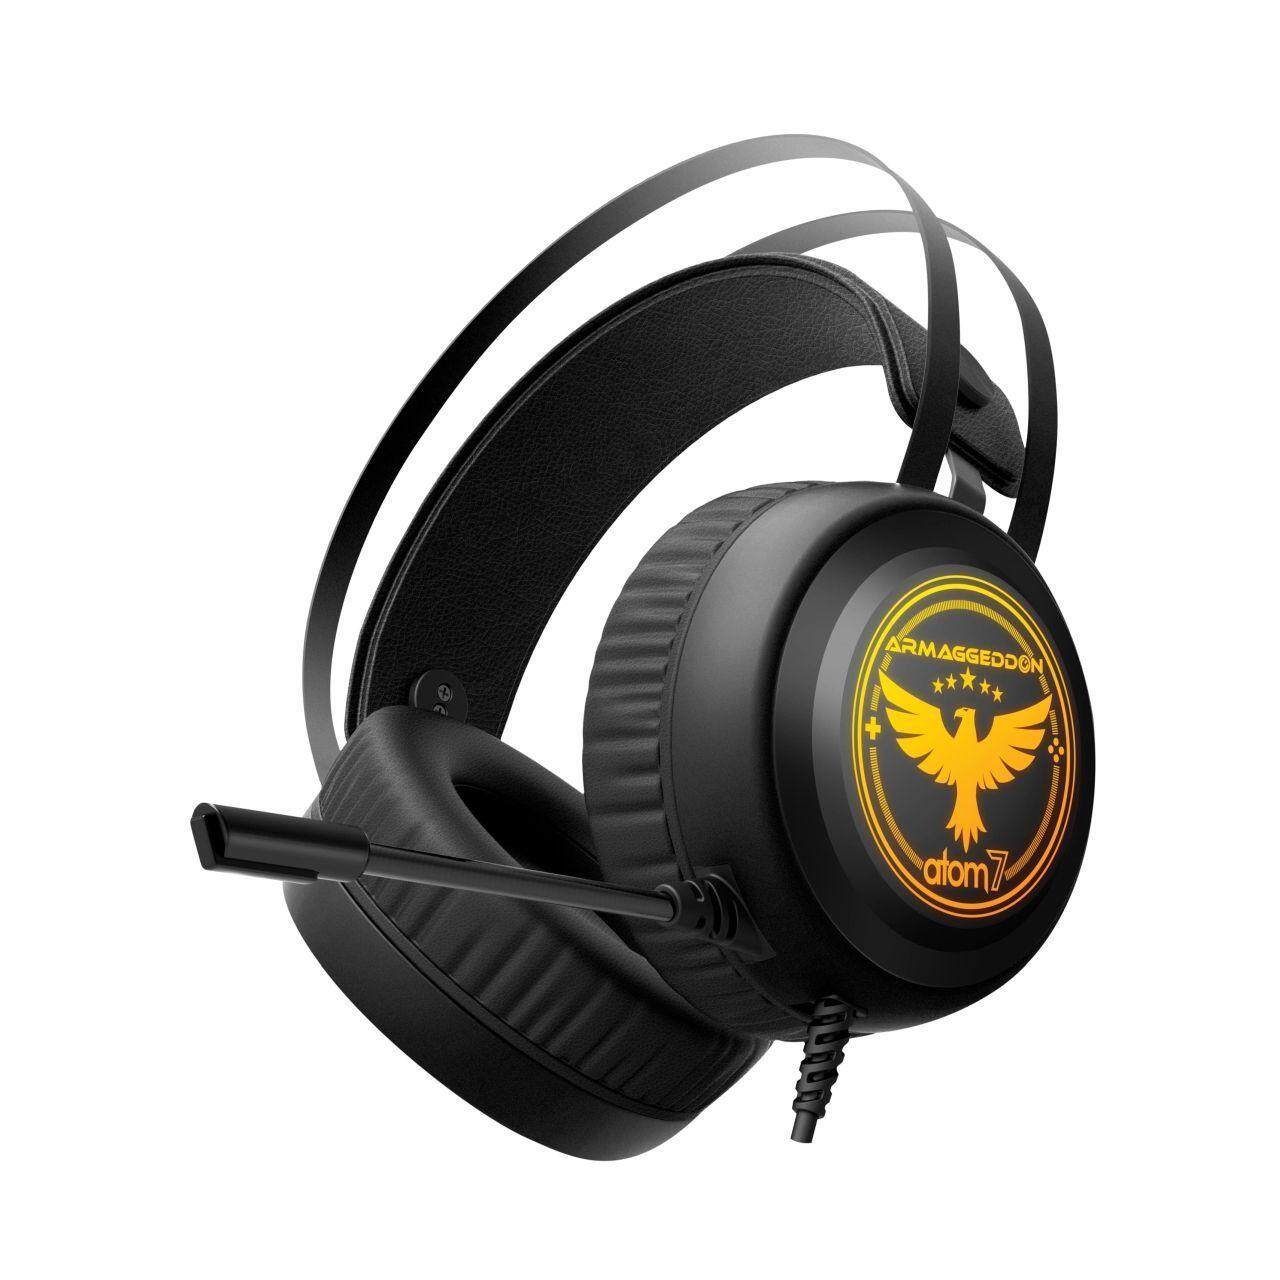 Armaggeddon ATOM 7 2.1 Over Ear Gaming Headset Headphone with Omnidirectional Mic 7 Color Pulsing Effect Wired Cable 2.2m